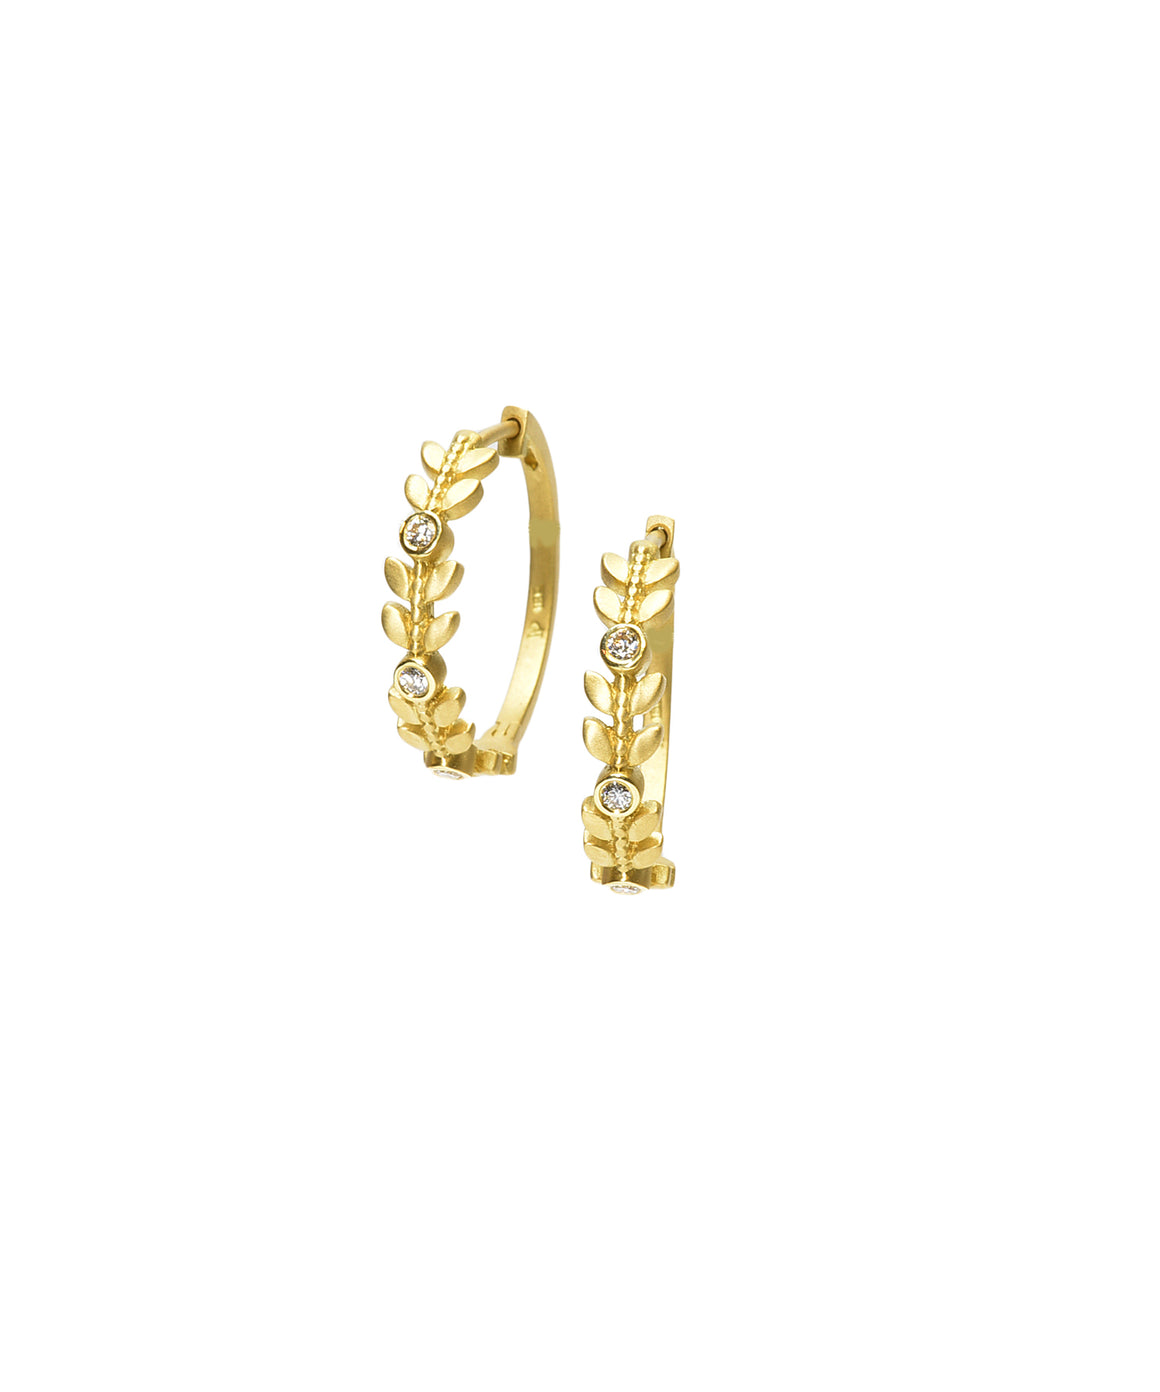 Leaf Hoop Earrings - Lesley Ann Jewels